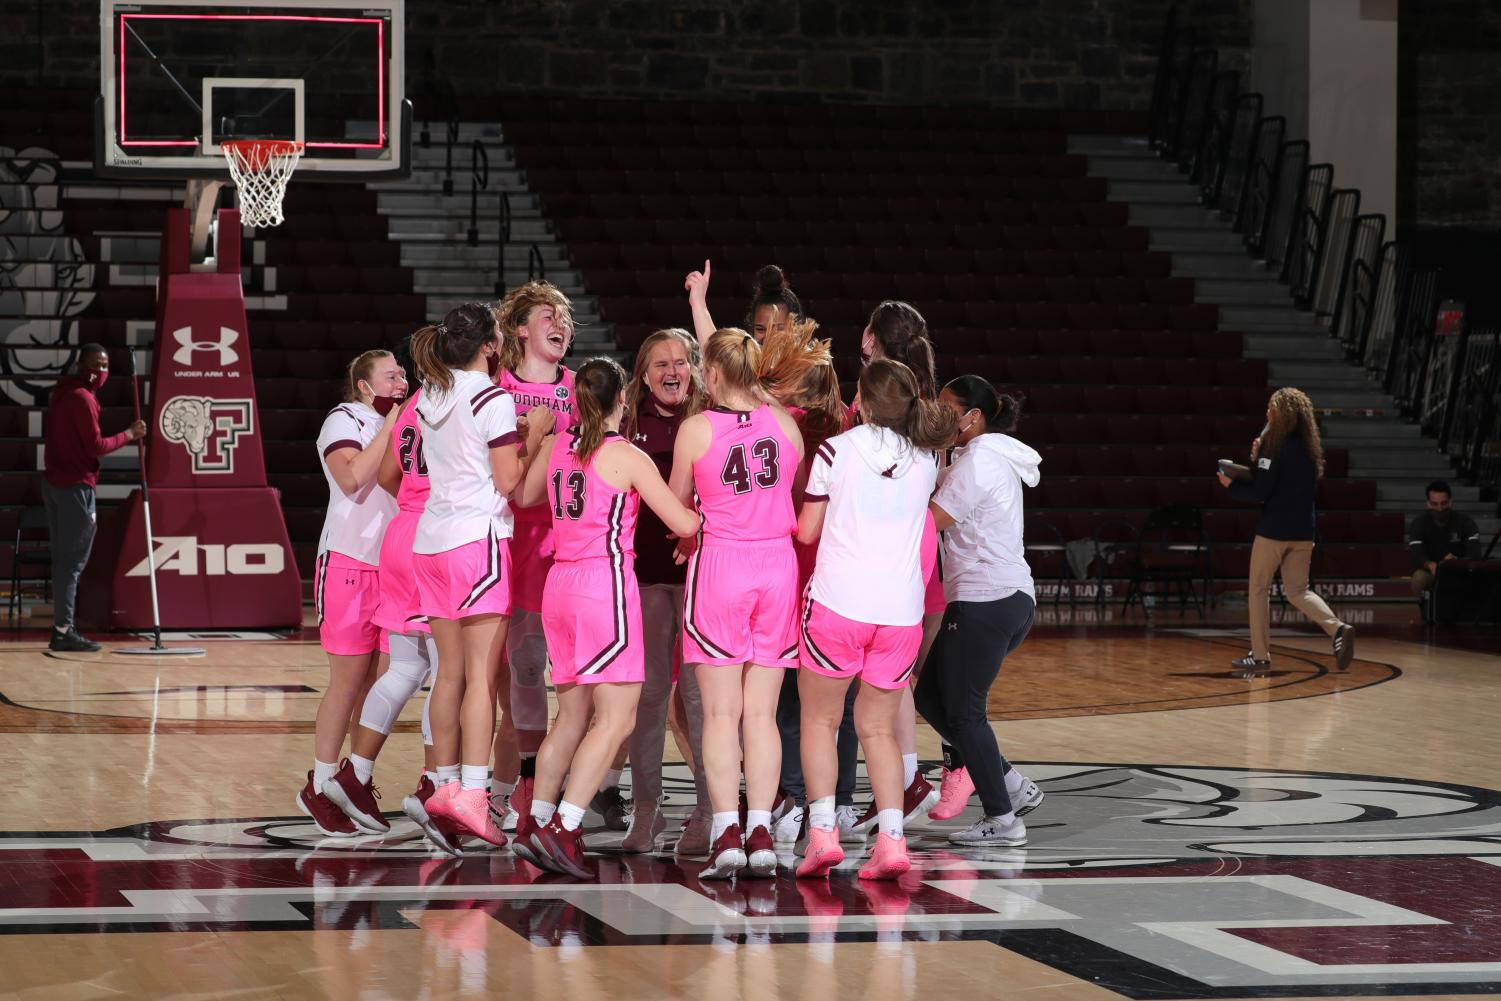 fordham women's basketball team jumping up and down in a huddle around their coach in the middle of a basketball court after defeating URI